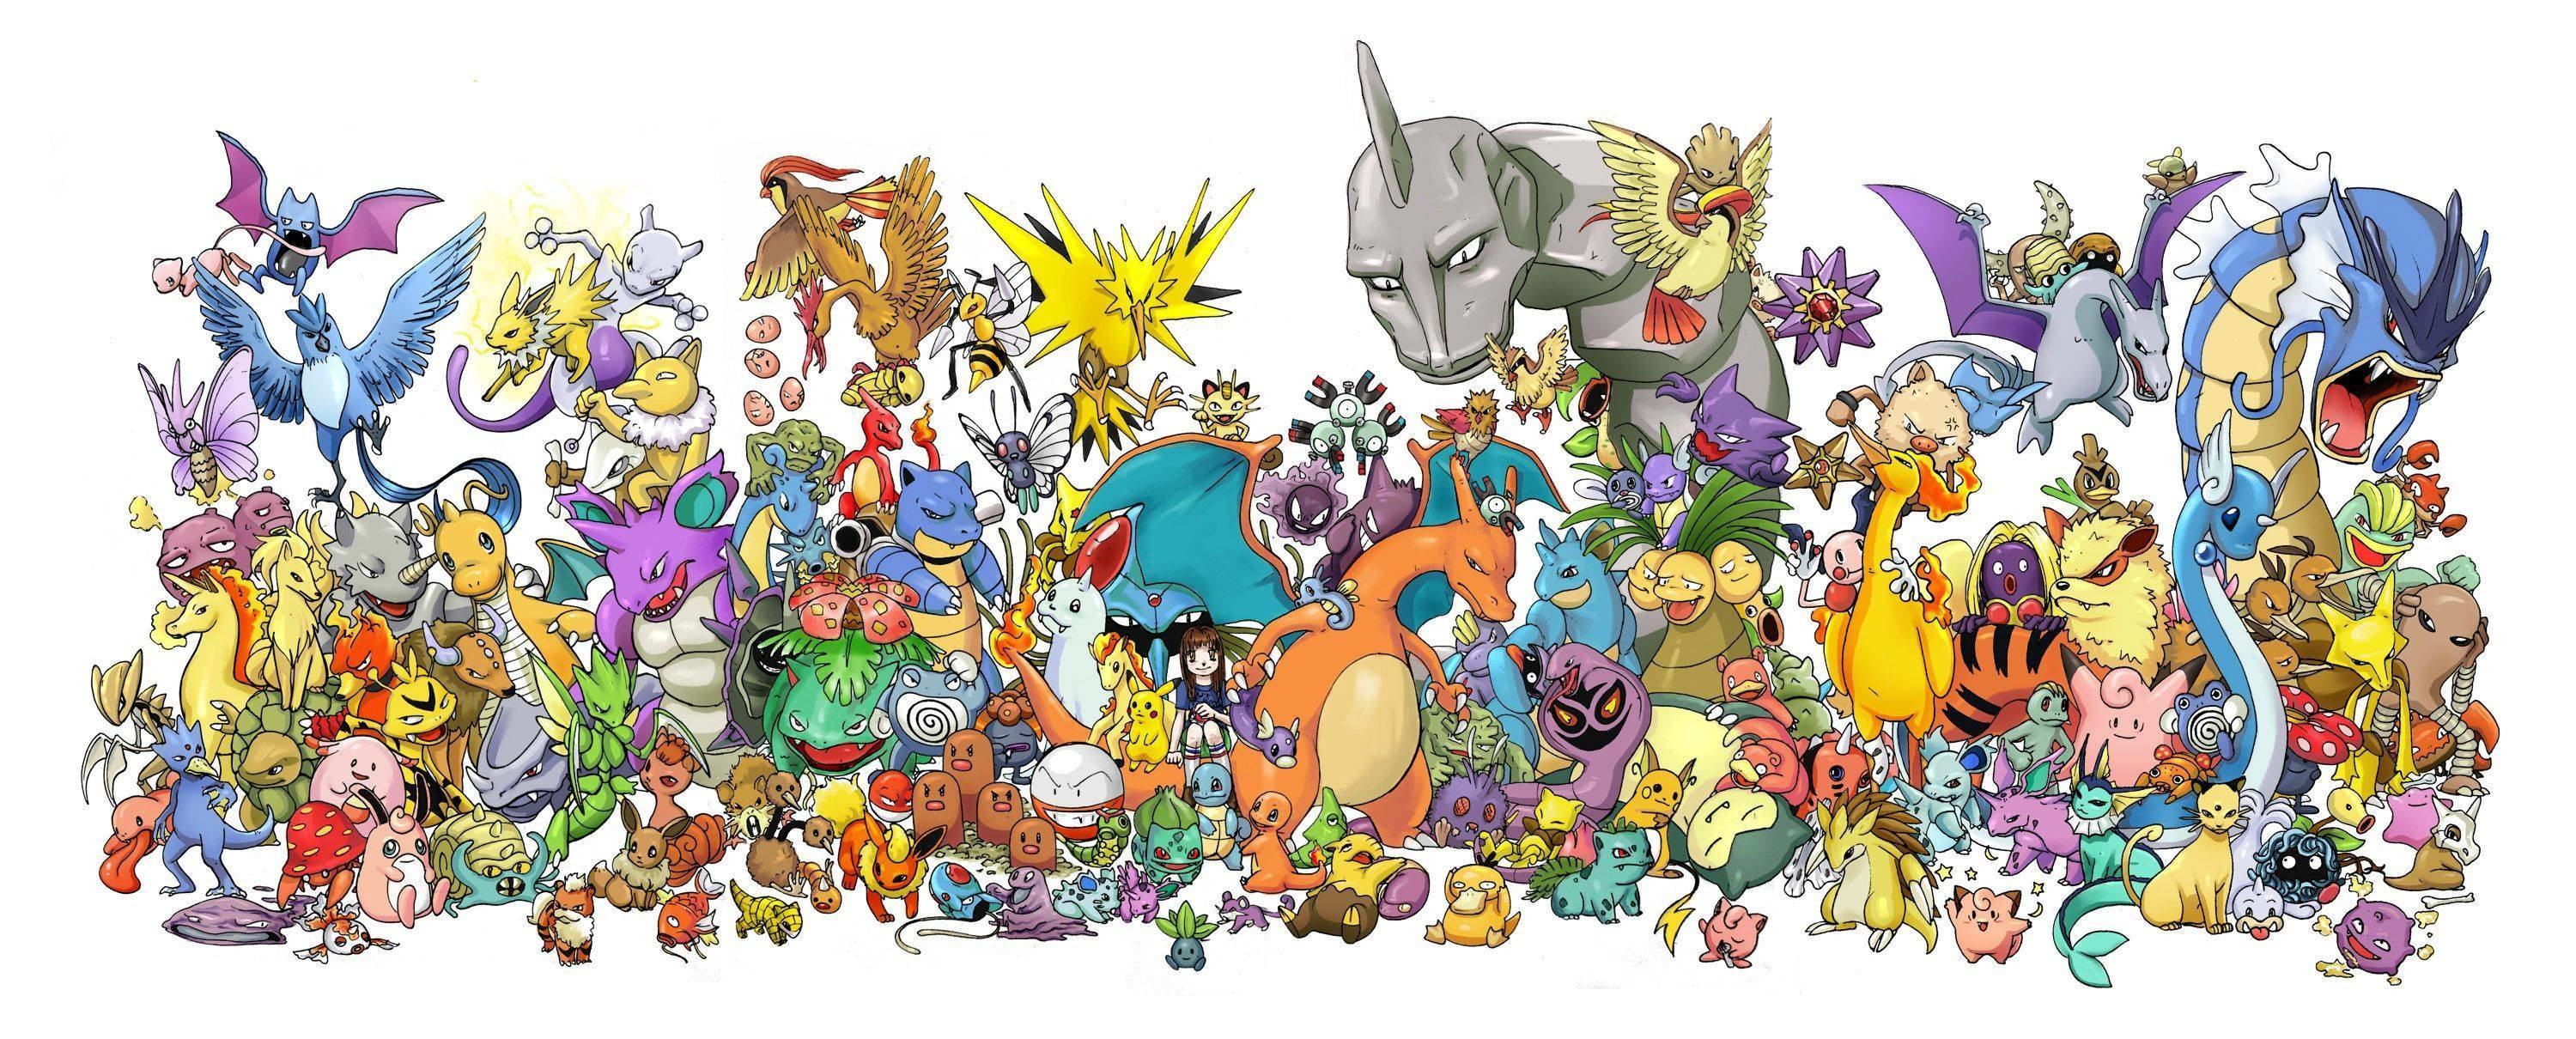 3000x1210 Wallpapers For > Original 151 Pokemon Wallpaper · Download · 1032 Pokemon Wallpapers ...